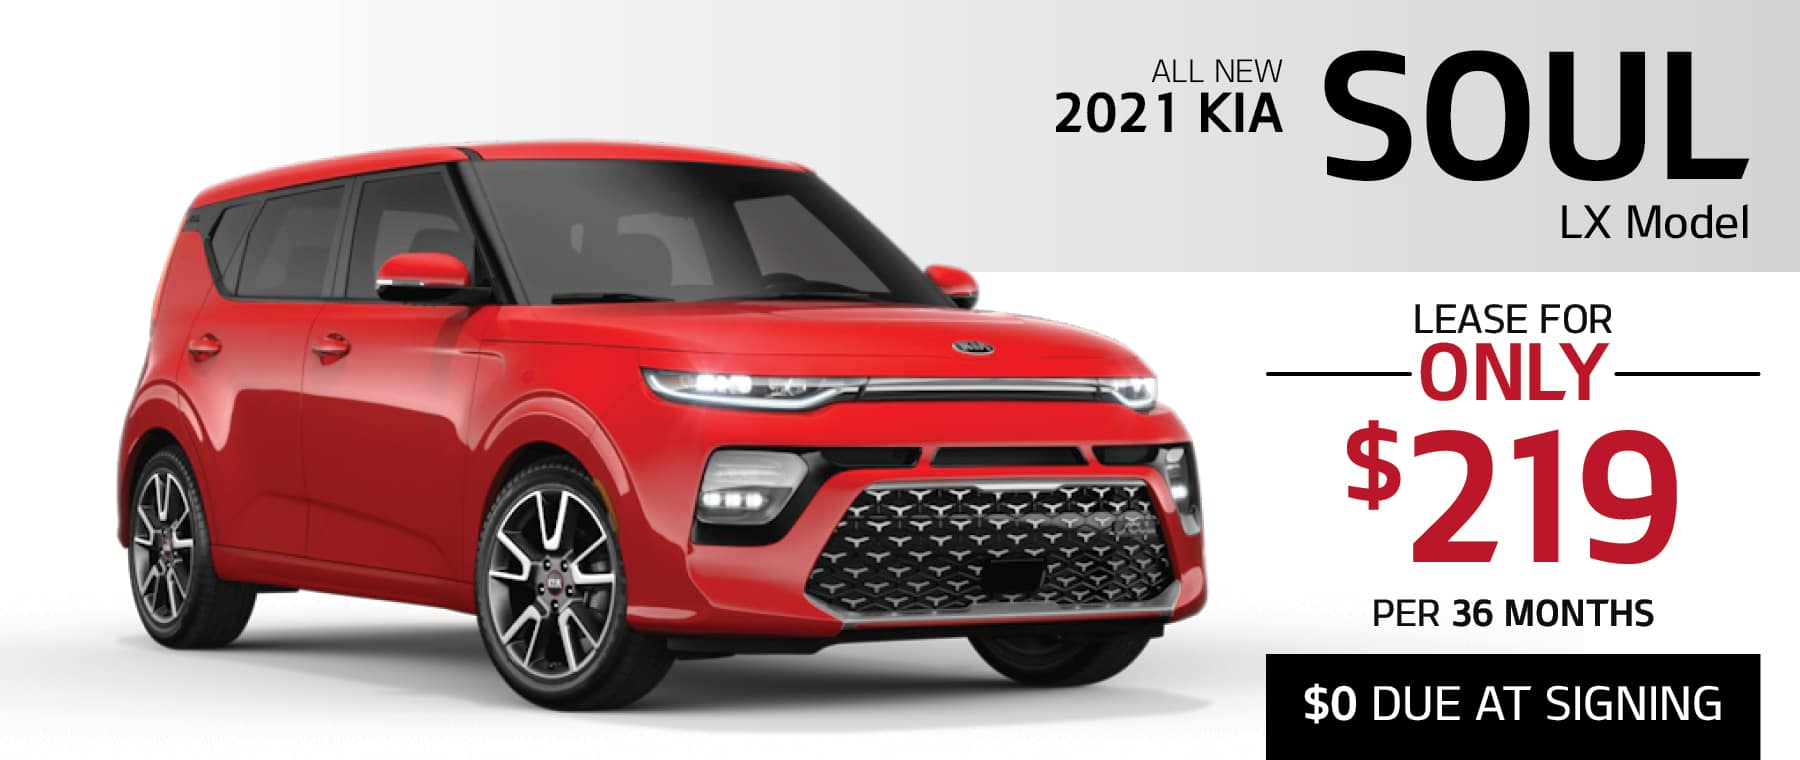 2021 Kia Soul LX Lease for $219 per month with $0 Due at Signing or finance for 0% APR for up to 66 months at Smail Kia in Greensburg PA 15601. Offer ends 11/2/2020